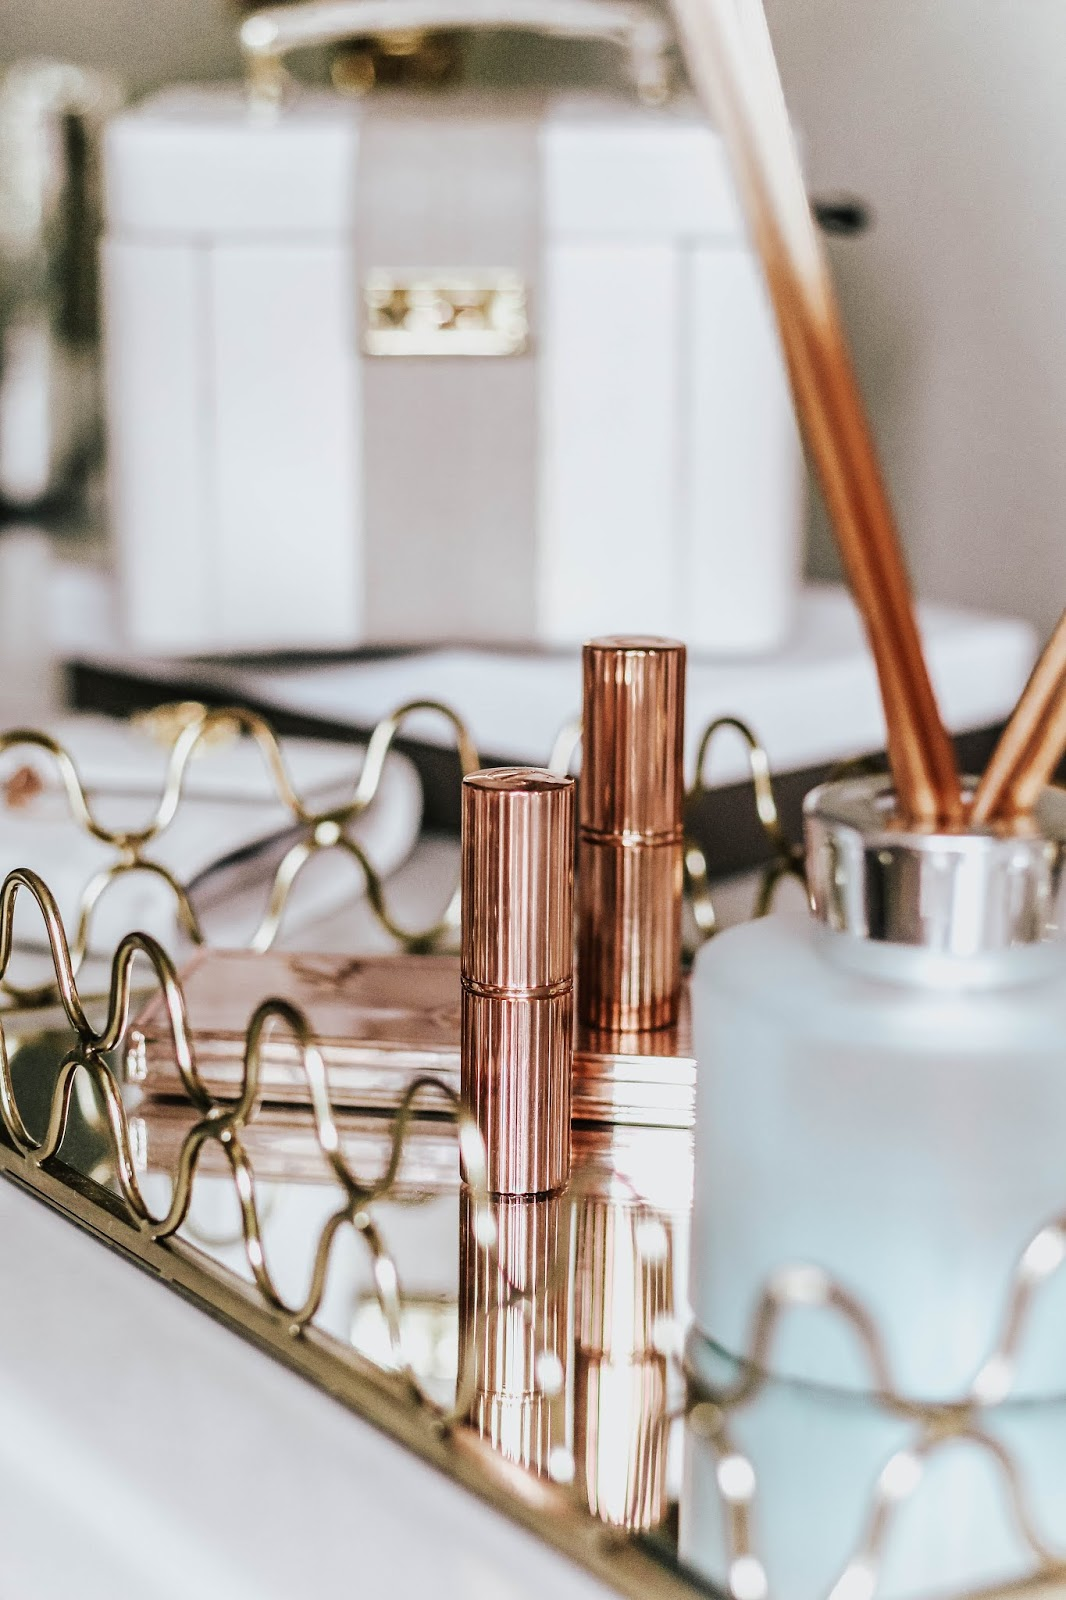 Charlotte Tilbury Rose Gold Lipstick Packaging